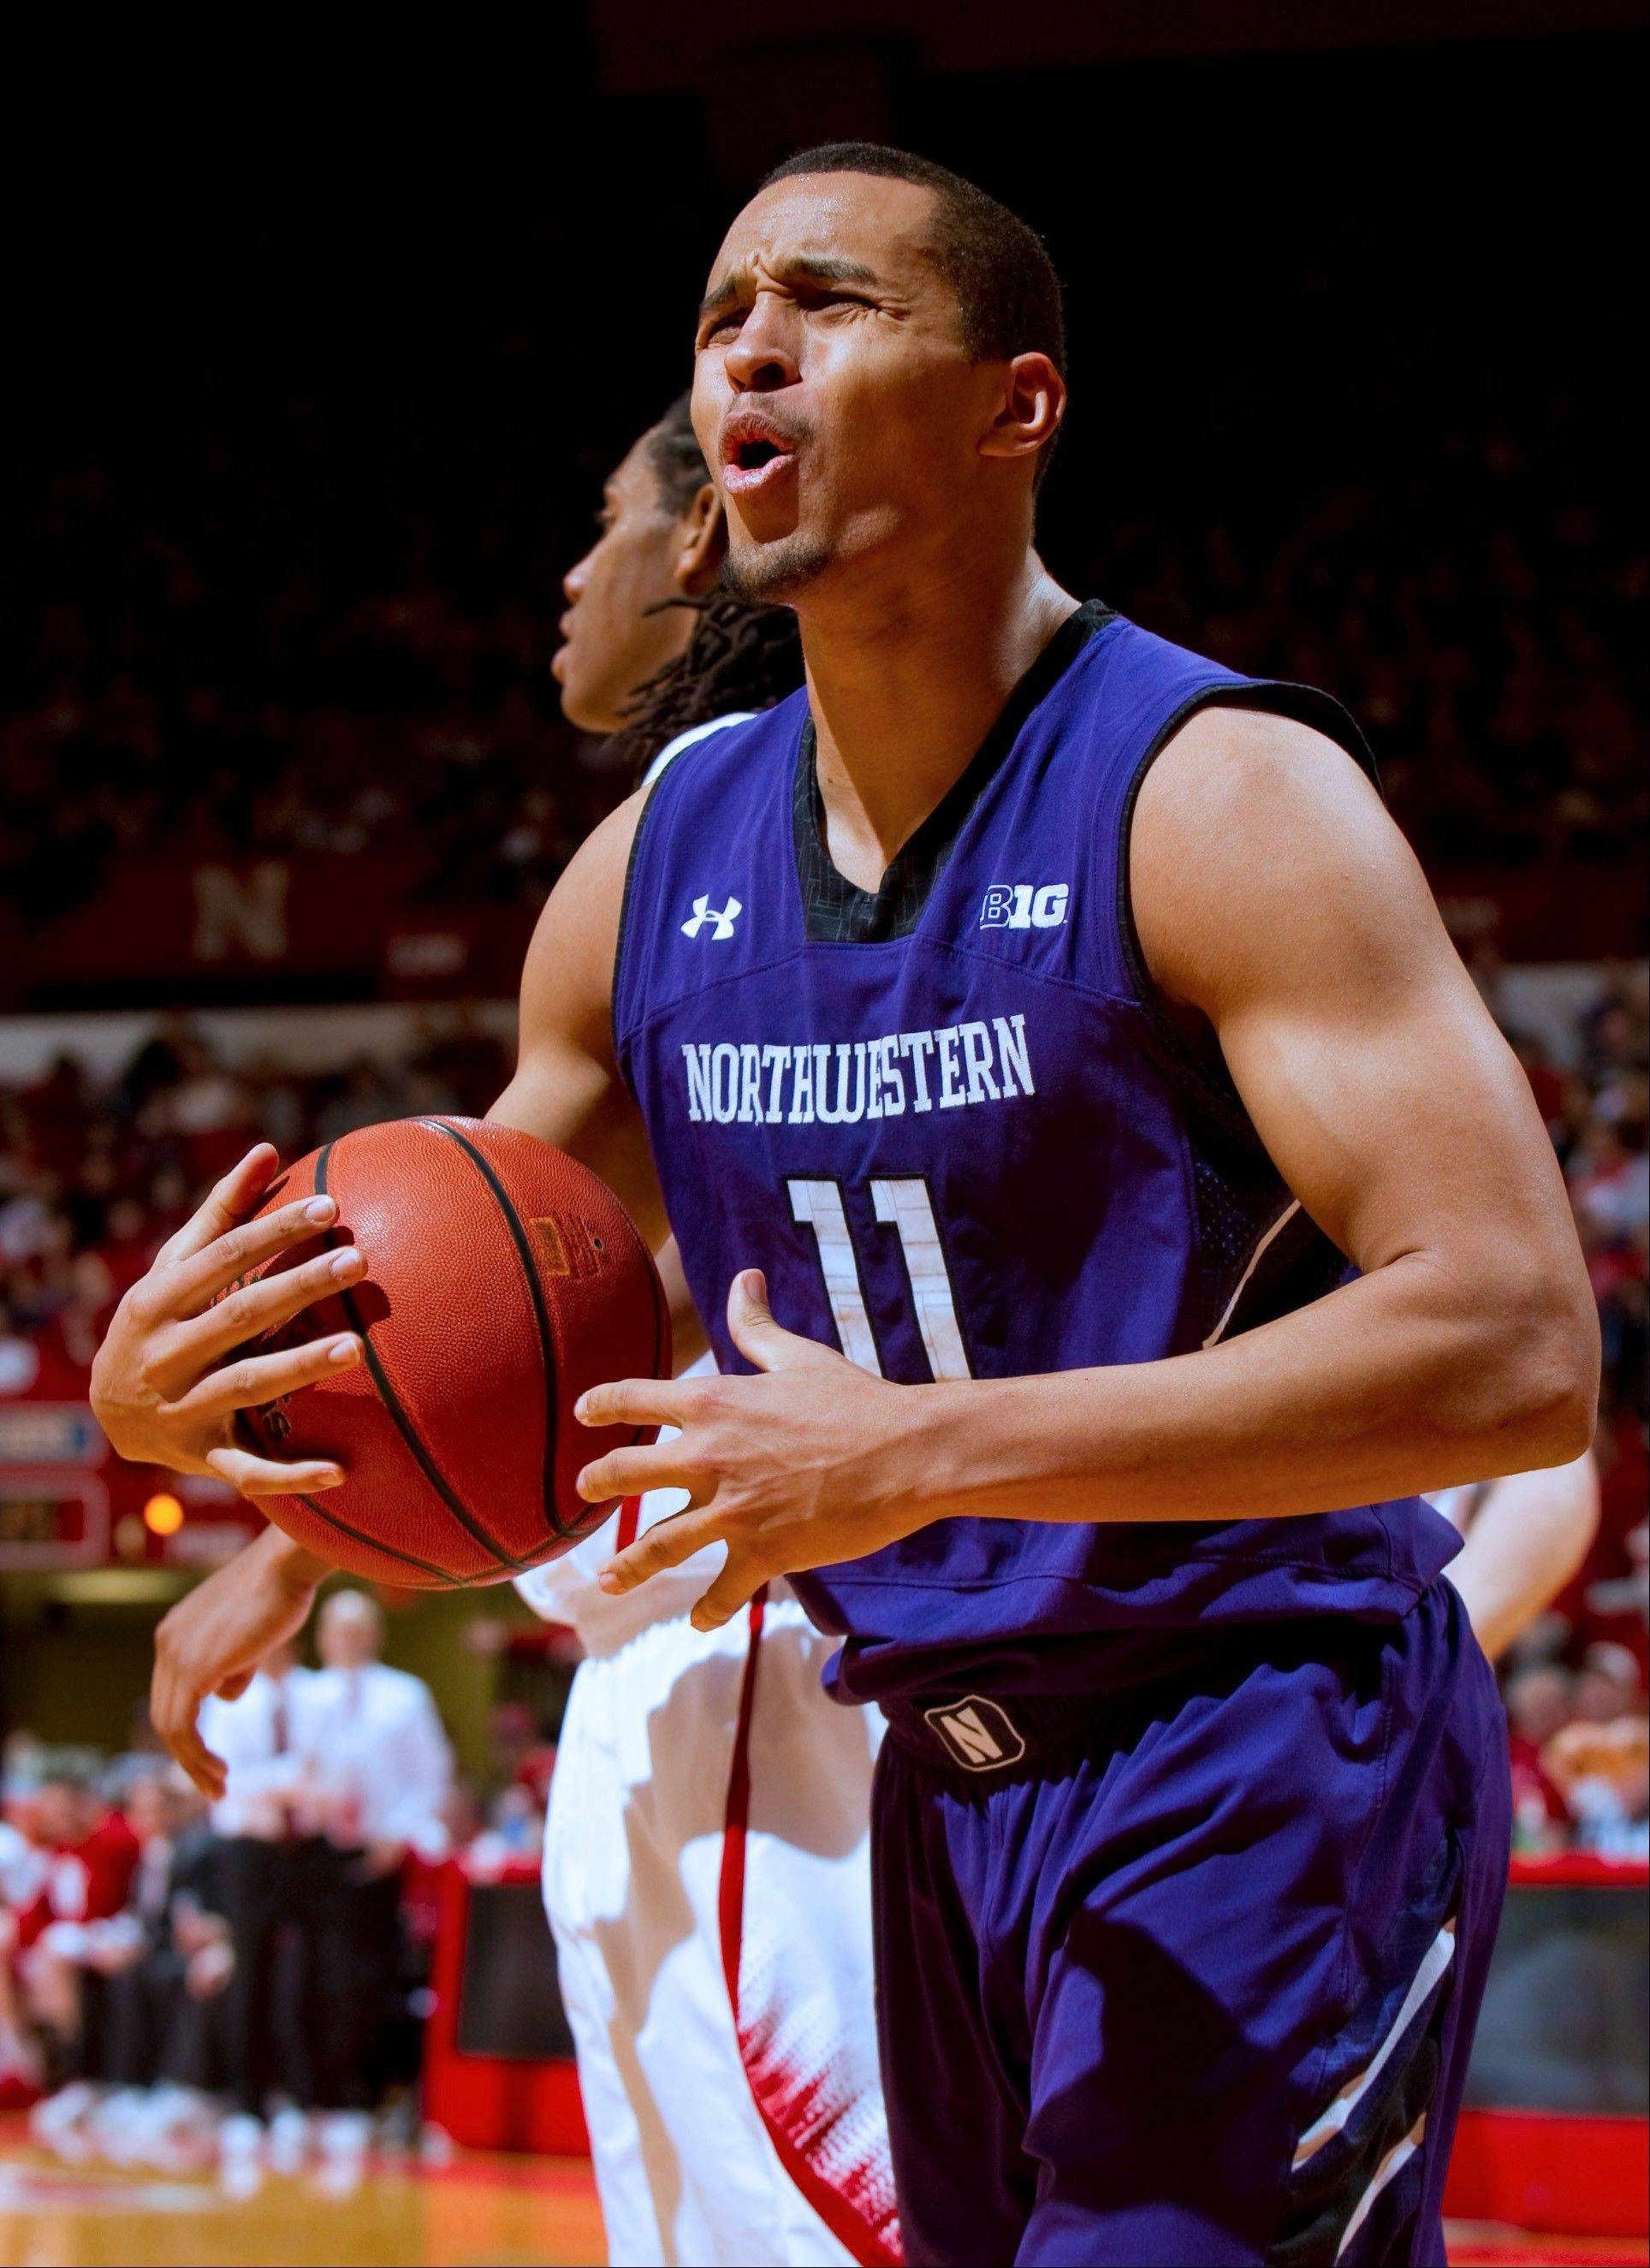 Northwestern�s Reggie Hearn argues a call during the first half of his team�s loss on Saturday.